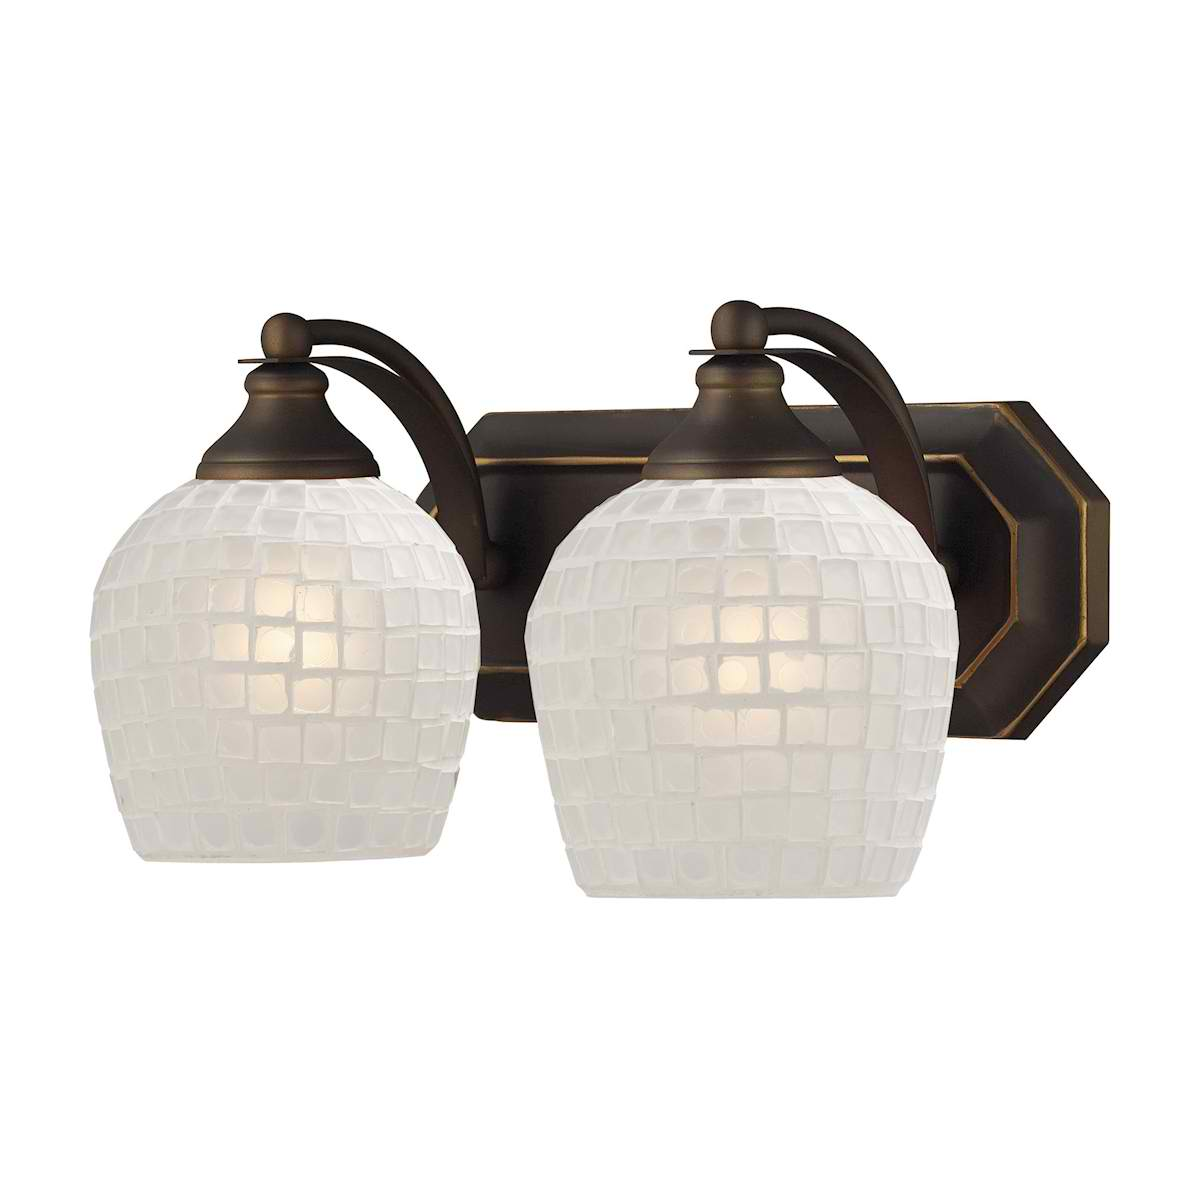 Vanity 2 Light Aged Bronze with White Glass